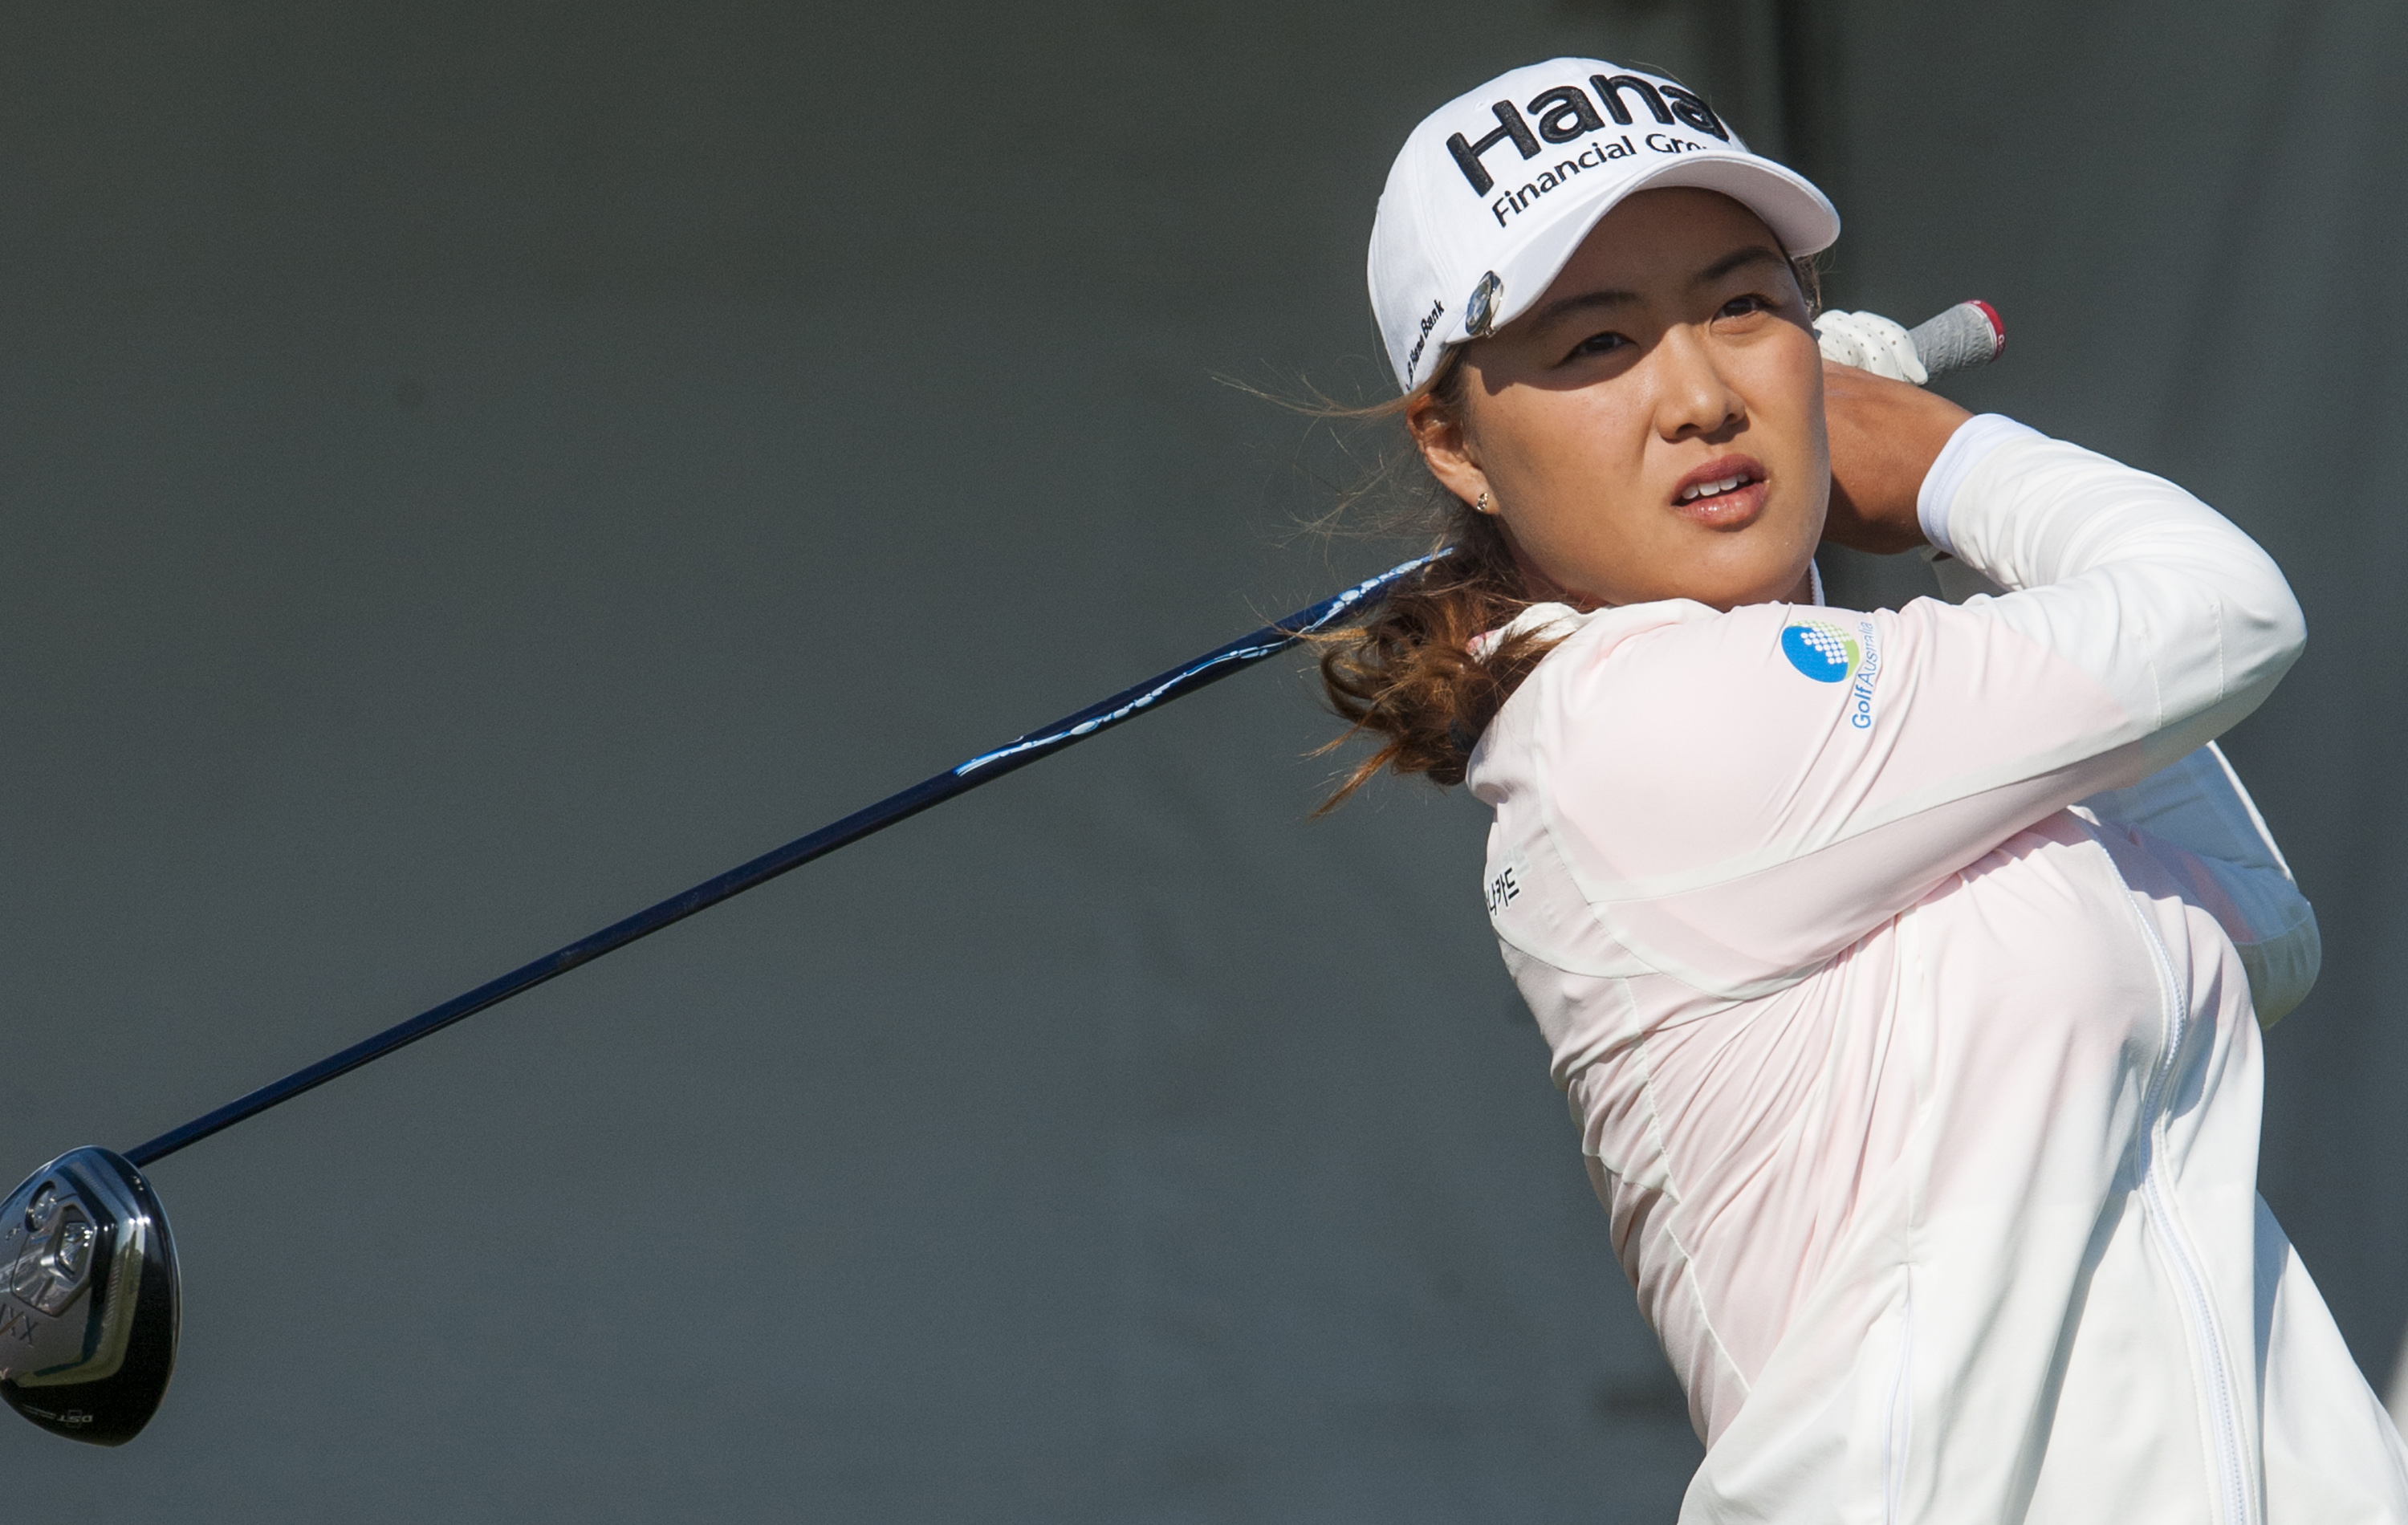 Minjee Lee tees off during round two of the Yokohama Tire LPGA Classic golf tournament in Prattville, Ala., on Friday, May 6, 2016. (Mickey Welsh/The Montgomery Advertiser via AP)  NO SALES; MANDATORY CREDIT